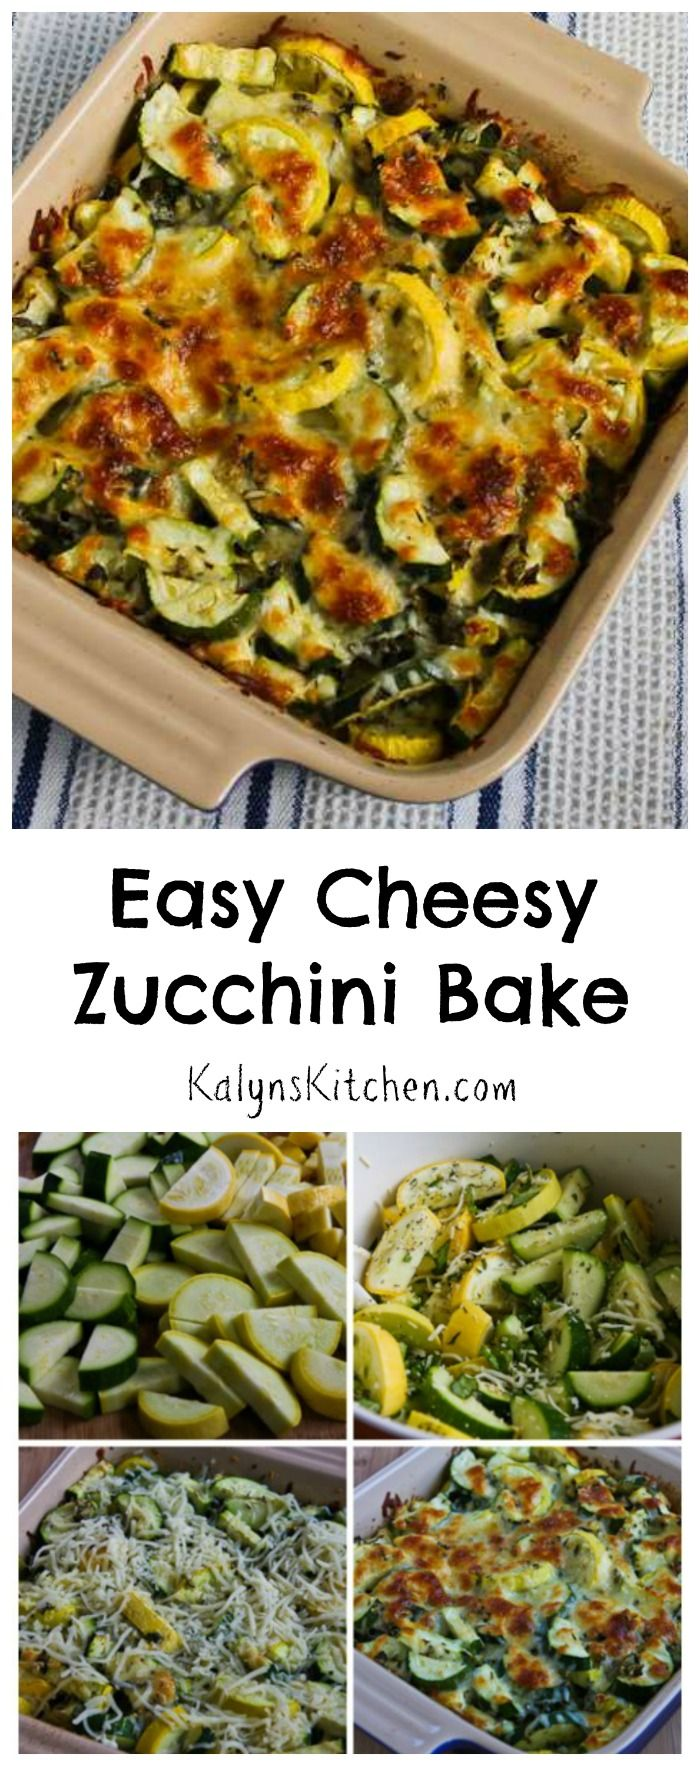 This simple but fabulous recipe for Easy Cheesy Zucchini Bake has been a huge hit ever since I first posted it in 2011, and now the recipe has been pinned over 1M times!  If you're going to have a surplus of zucchini coming up, you want to try this easy low-carb and gluten-free zucchini recipe!  [from KalynsKitchen.com]